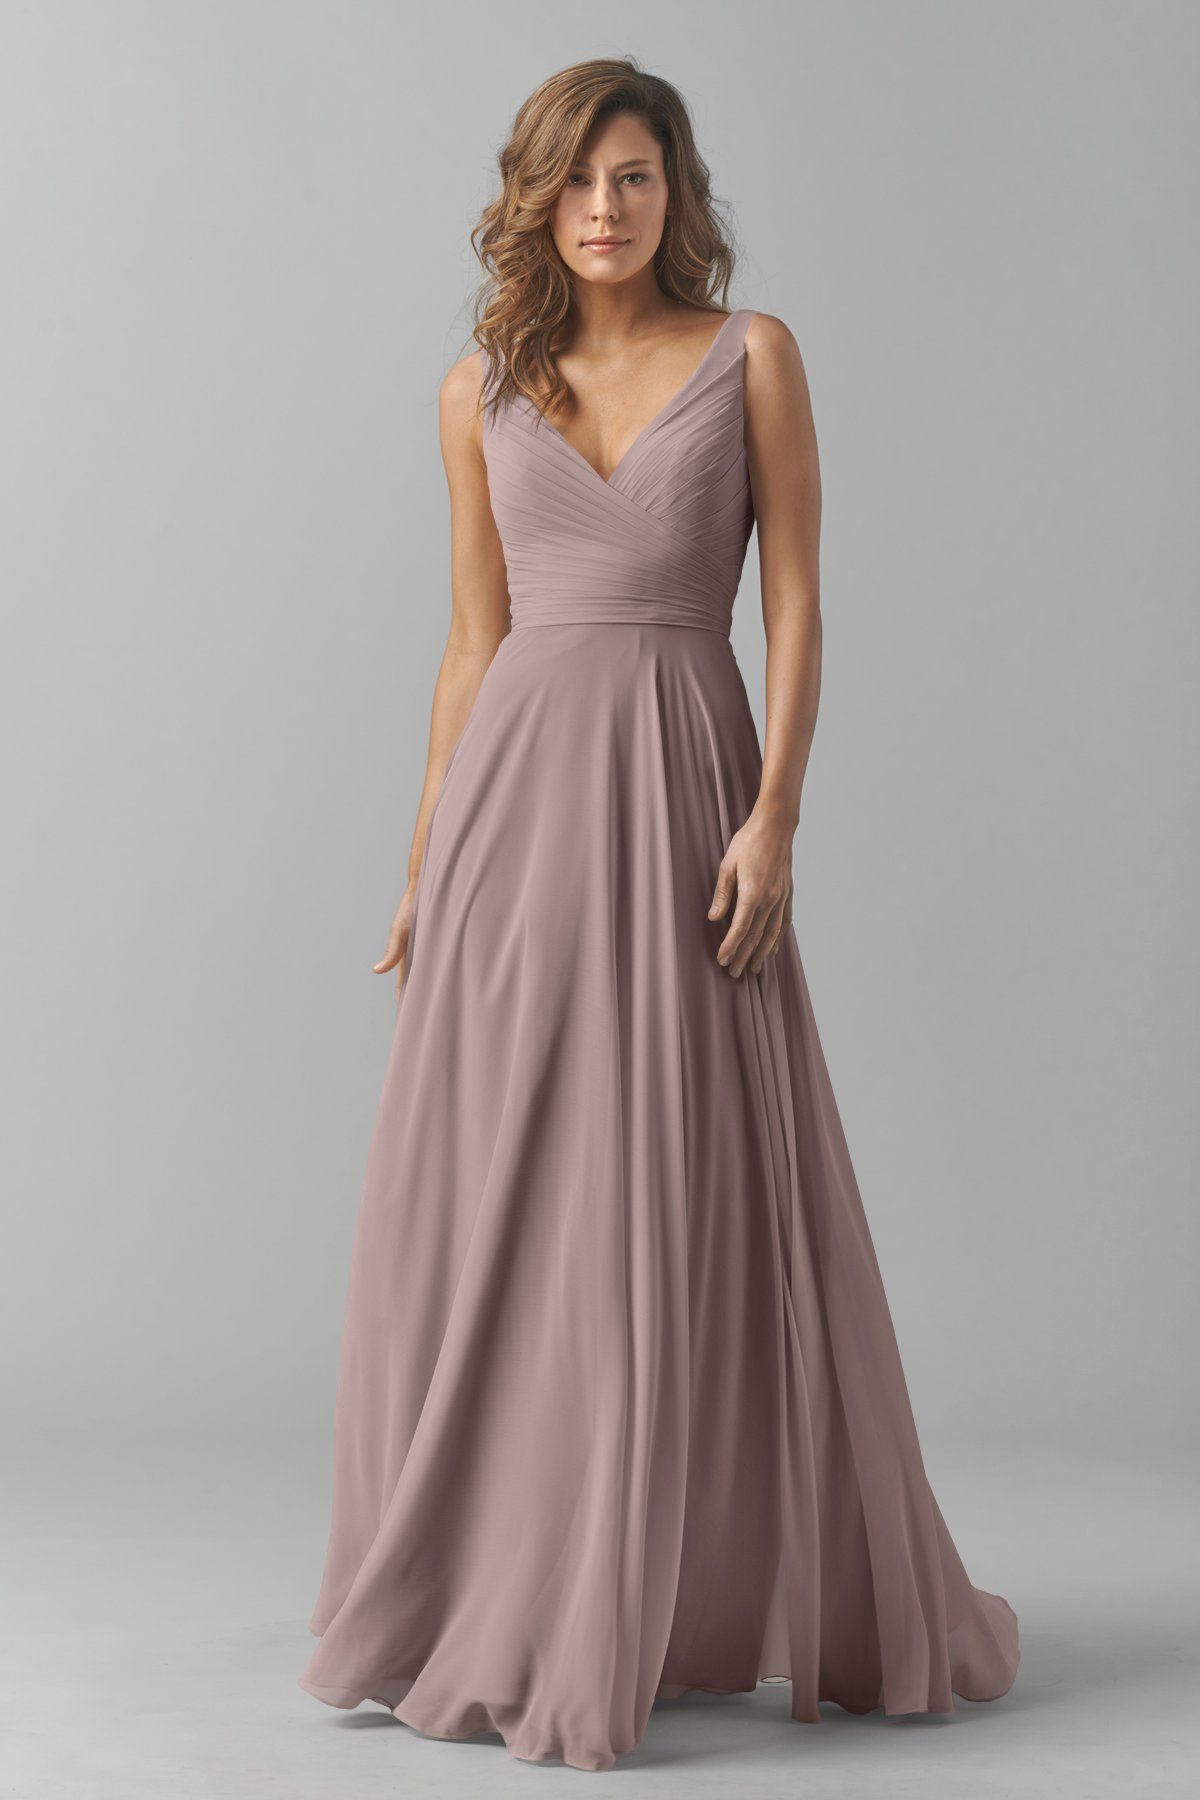 eeae6560cbb73 THIS BRIDESMAID DRESS OMG Watters Maids Dress Karen